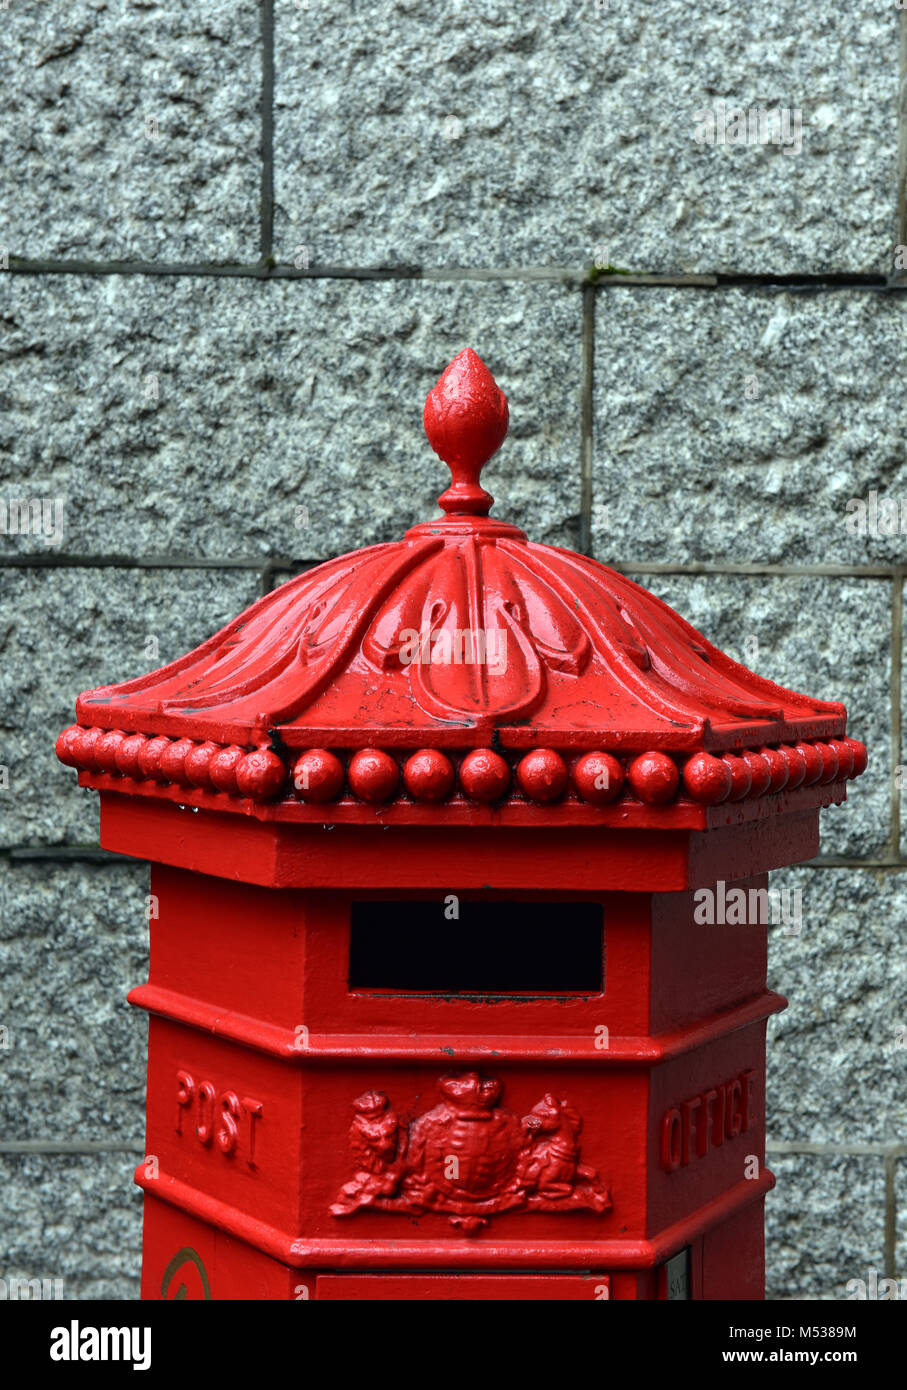 An old fashioned vintage or antique posting box or post mailing box for the collection and postal service of letters - Stock Image